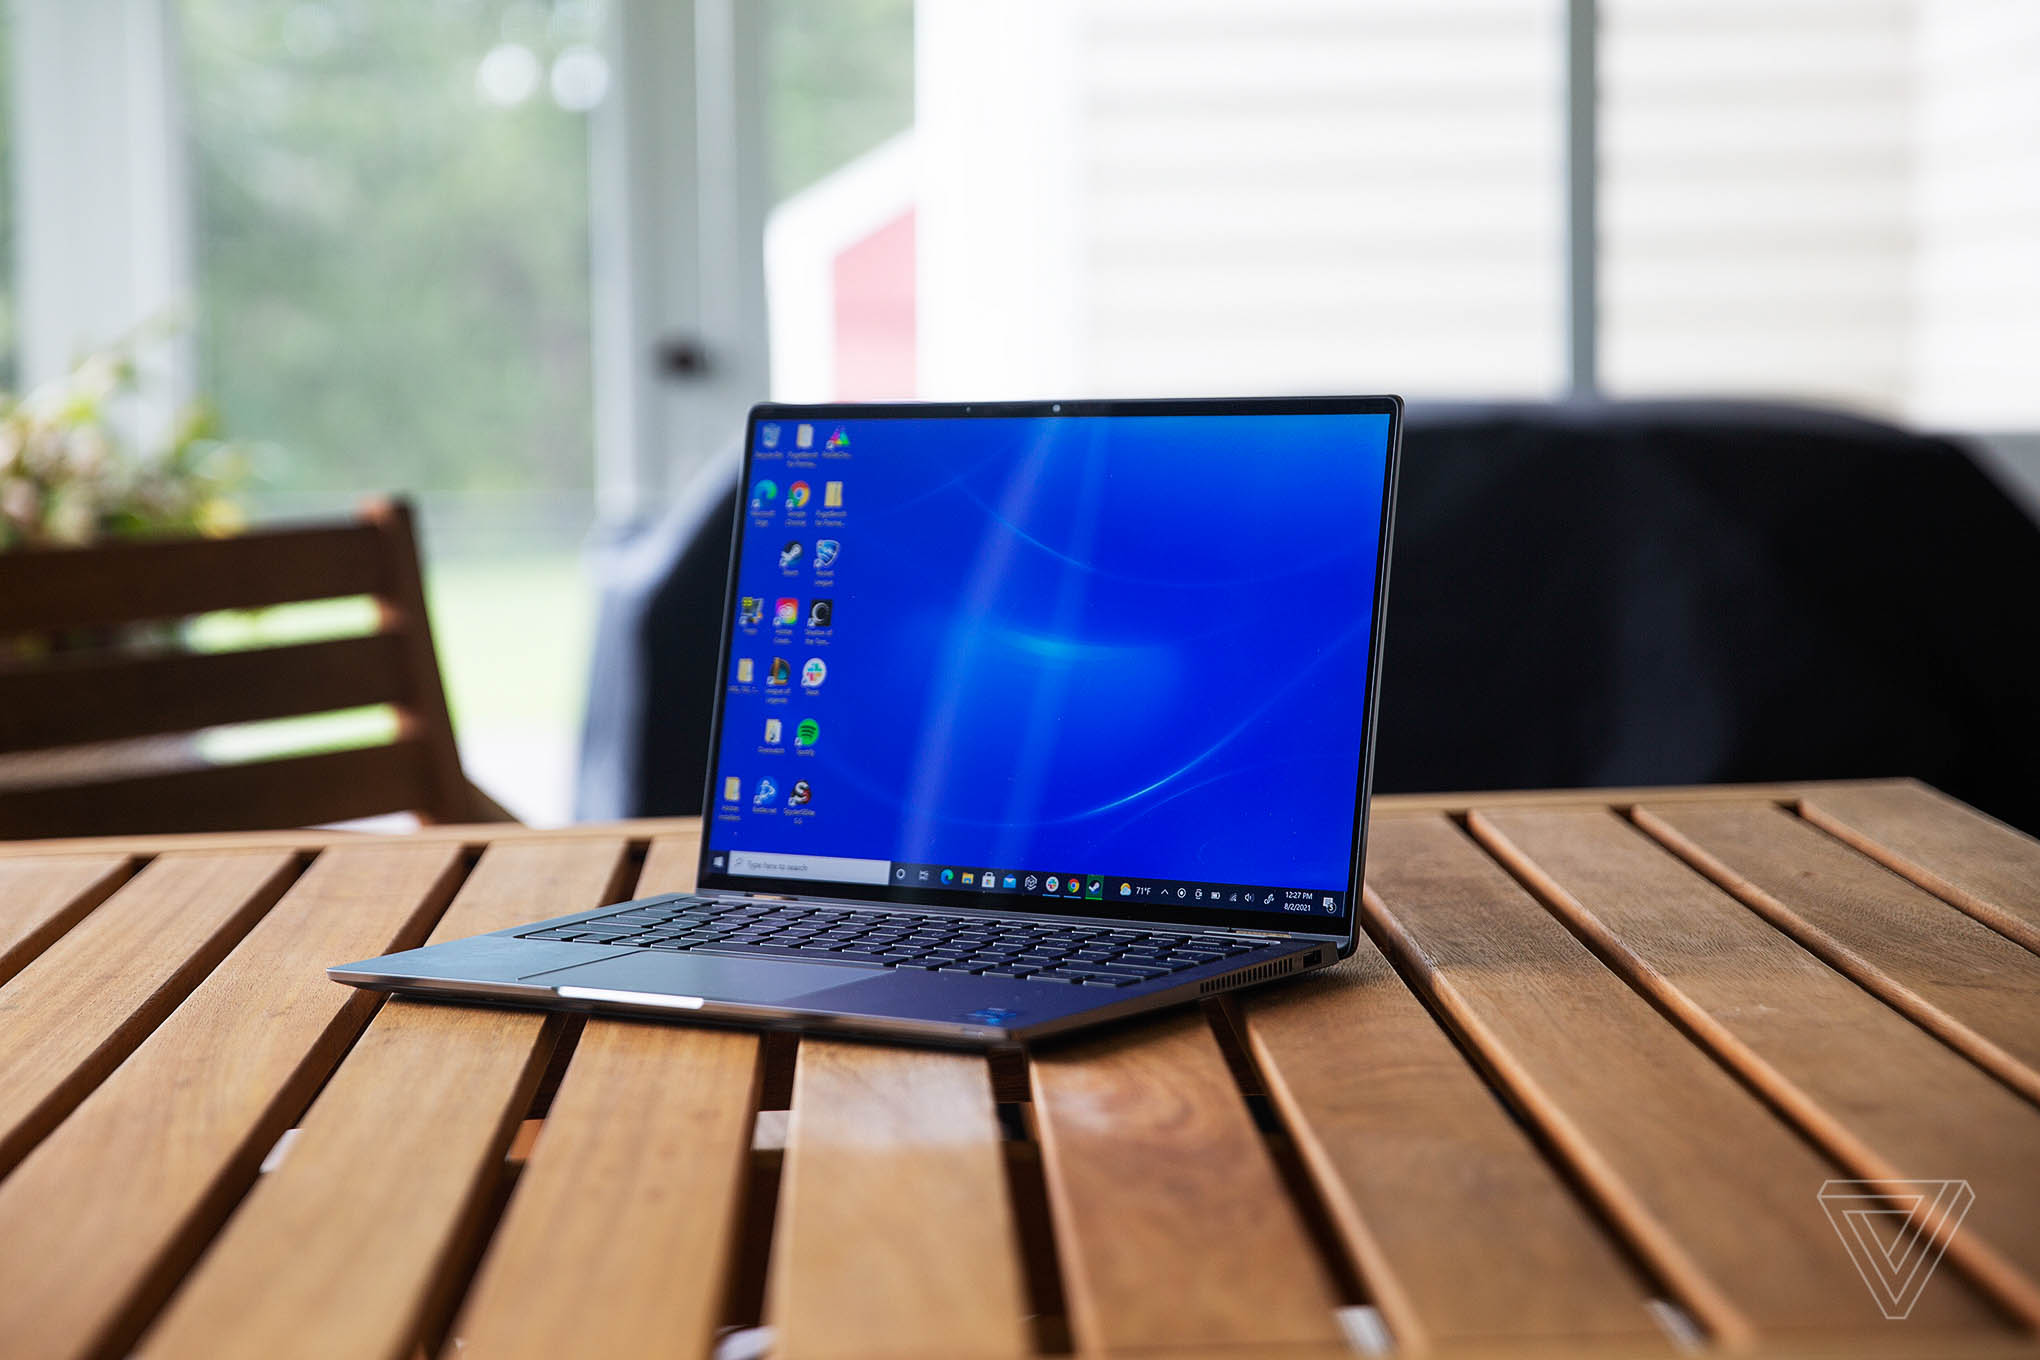 The Dell Latitude 9420 sits on a porch gable, facing to the left. The screen displays a desktop with a blue background.